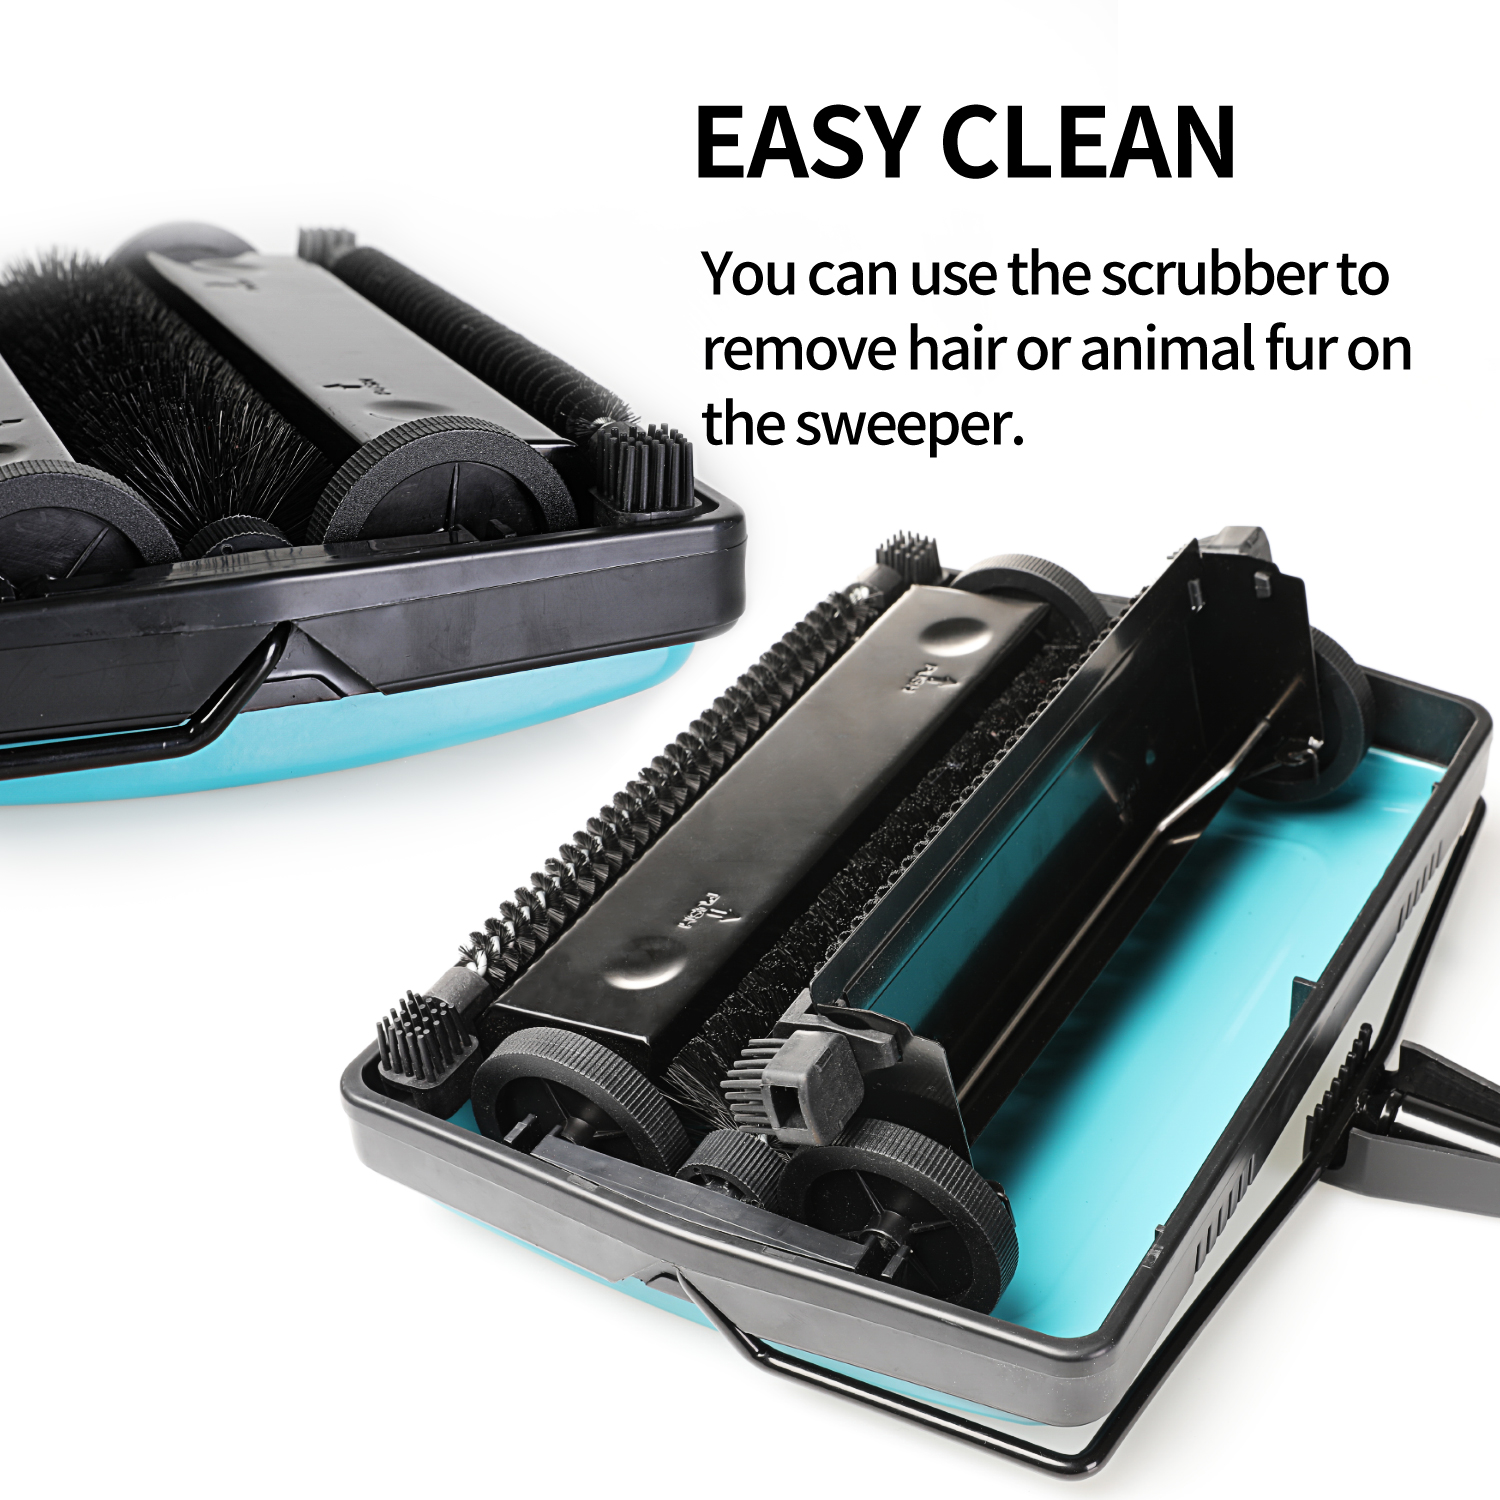 Color:Blue Carpet Sweeper Cleaner For Home Office Low Carpets Rugs Undercoat Carpets Pet Hair Dust Scraps Small Rubbish Cleaning